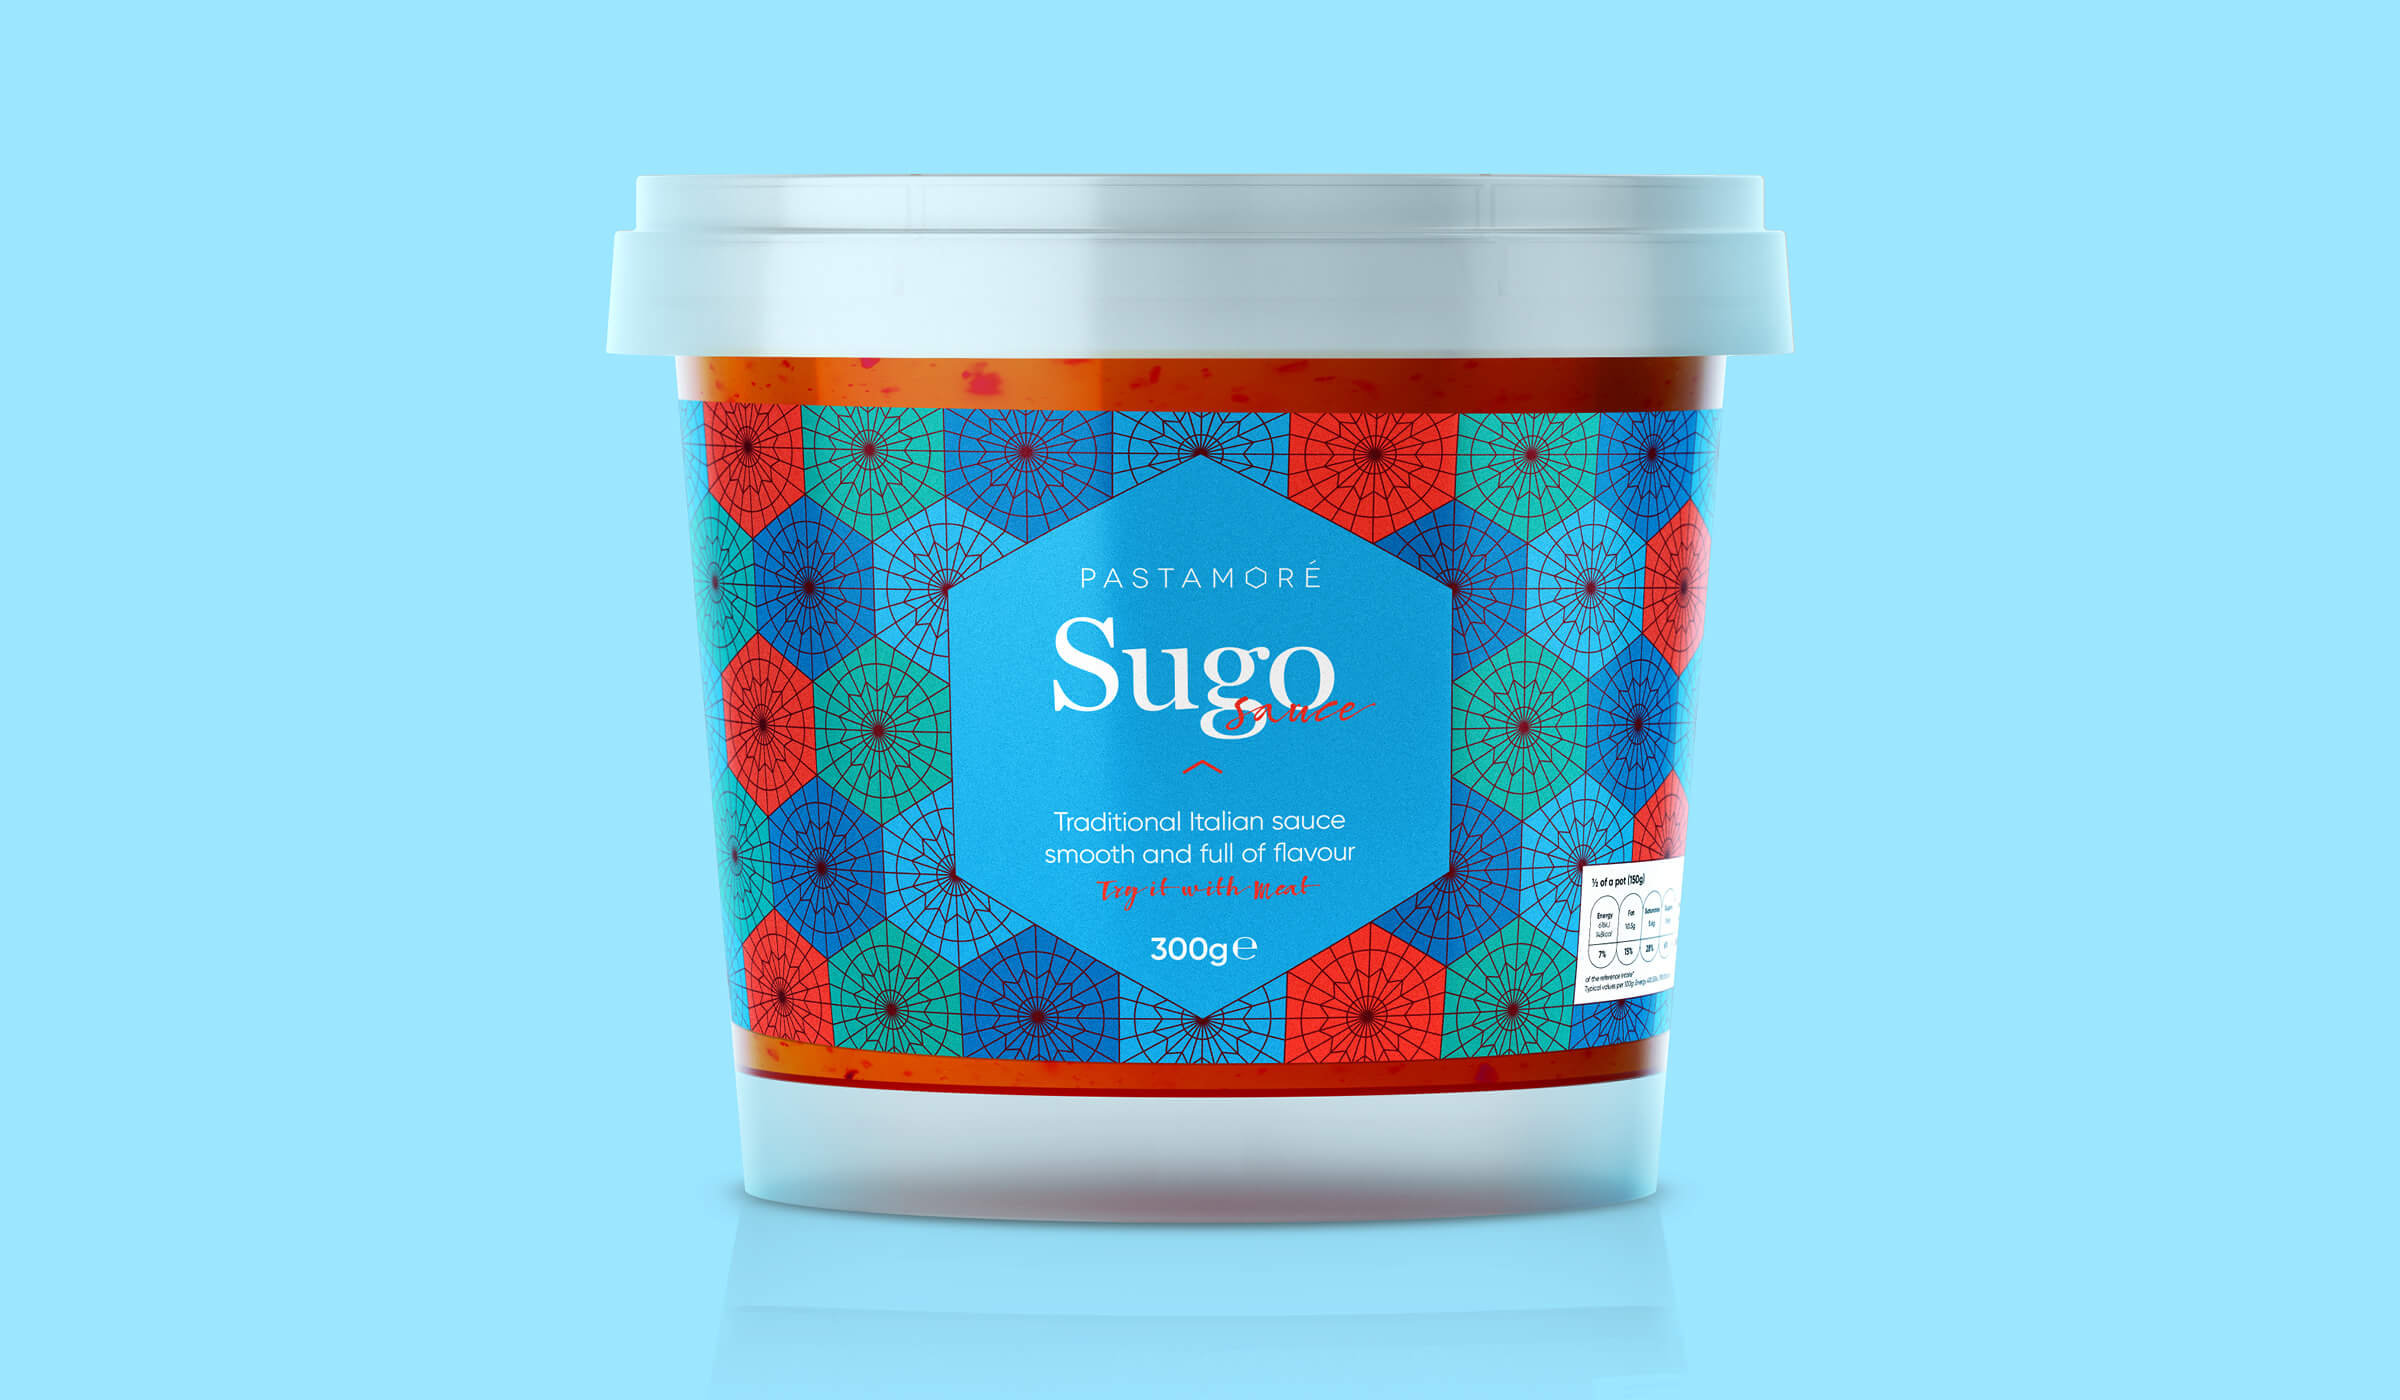 Pastamore Sugo packaging design